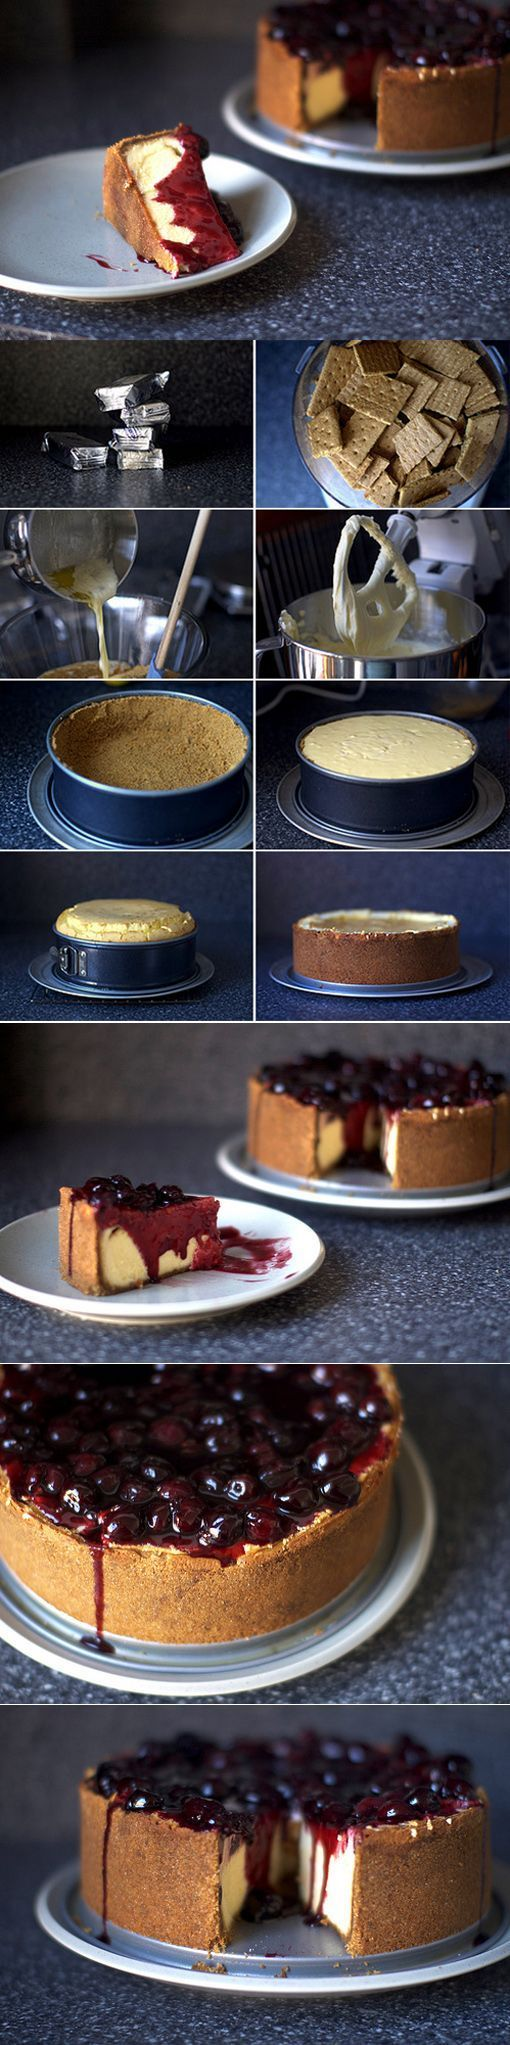 Una receta increible del New York Cheesecake / http://smittenkitchen.com/: